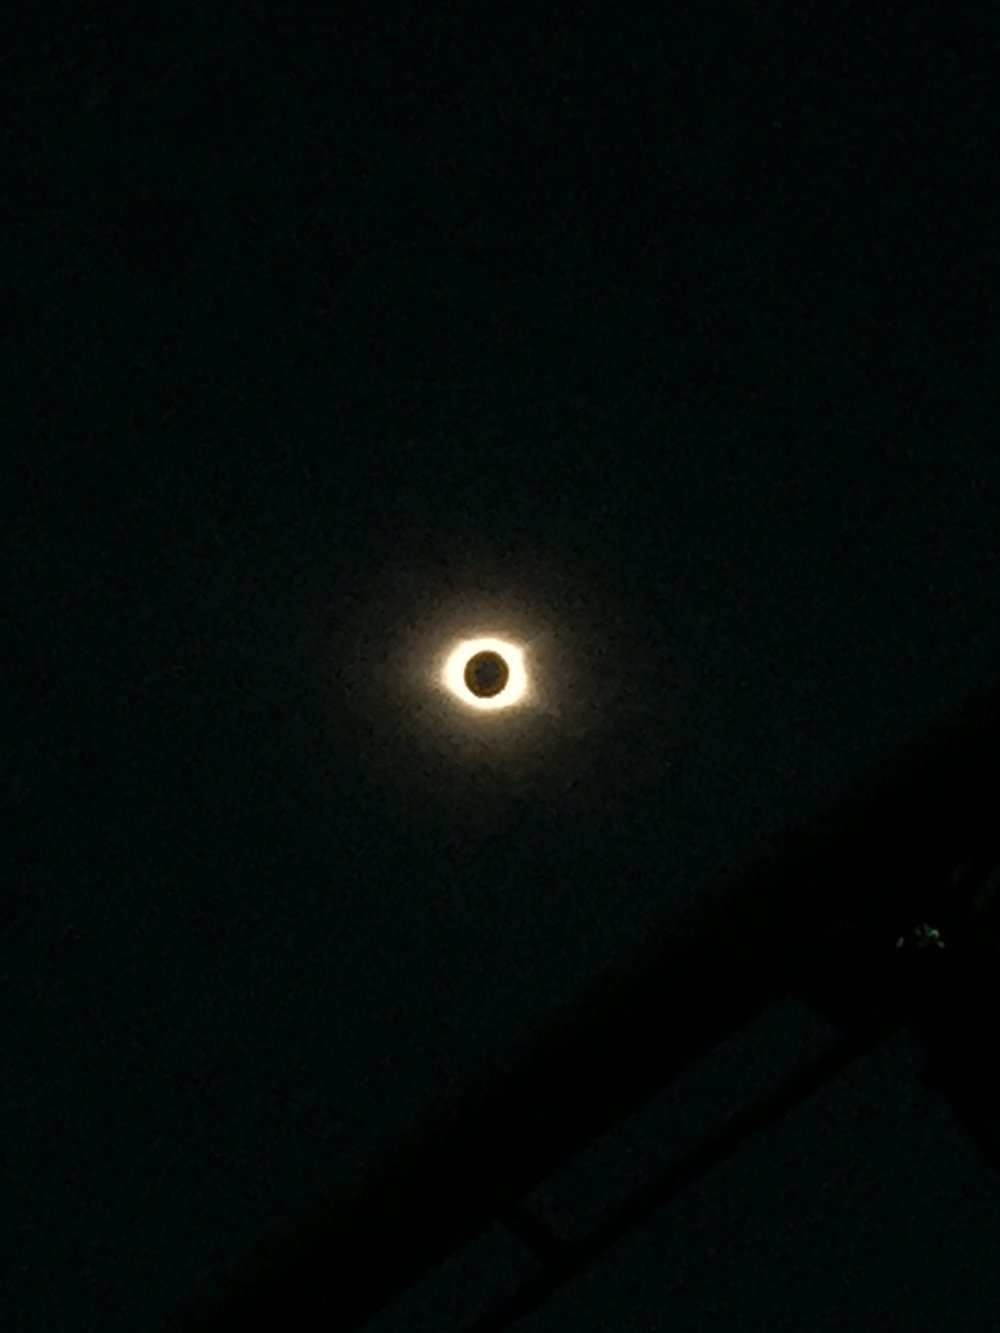 Photo of corona by Reza Madhavan of Princeton, NJ, viewed in Greenville, SC